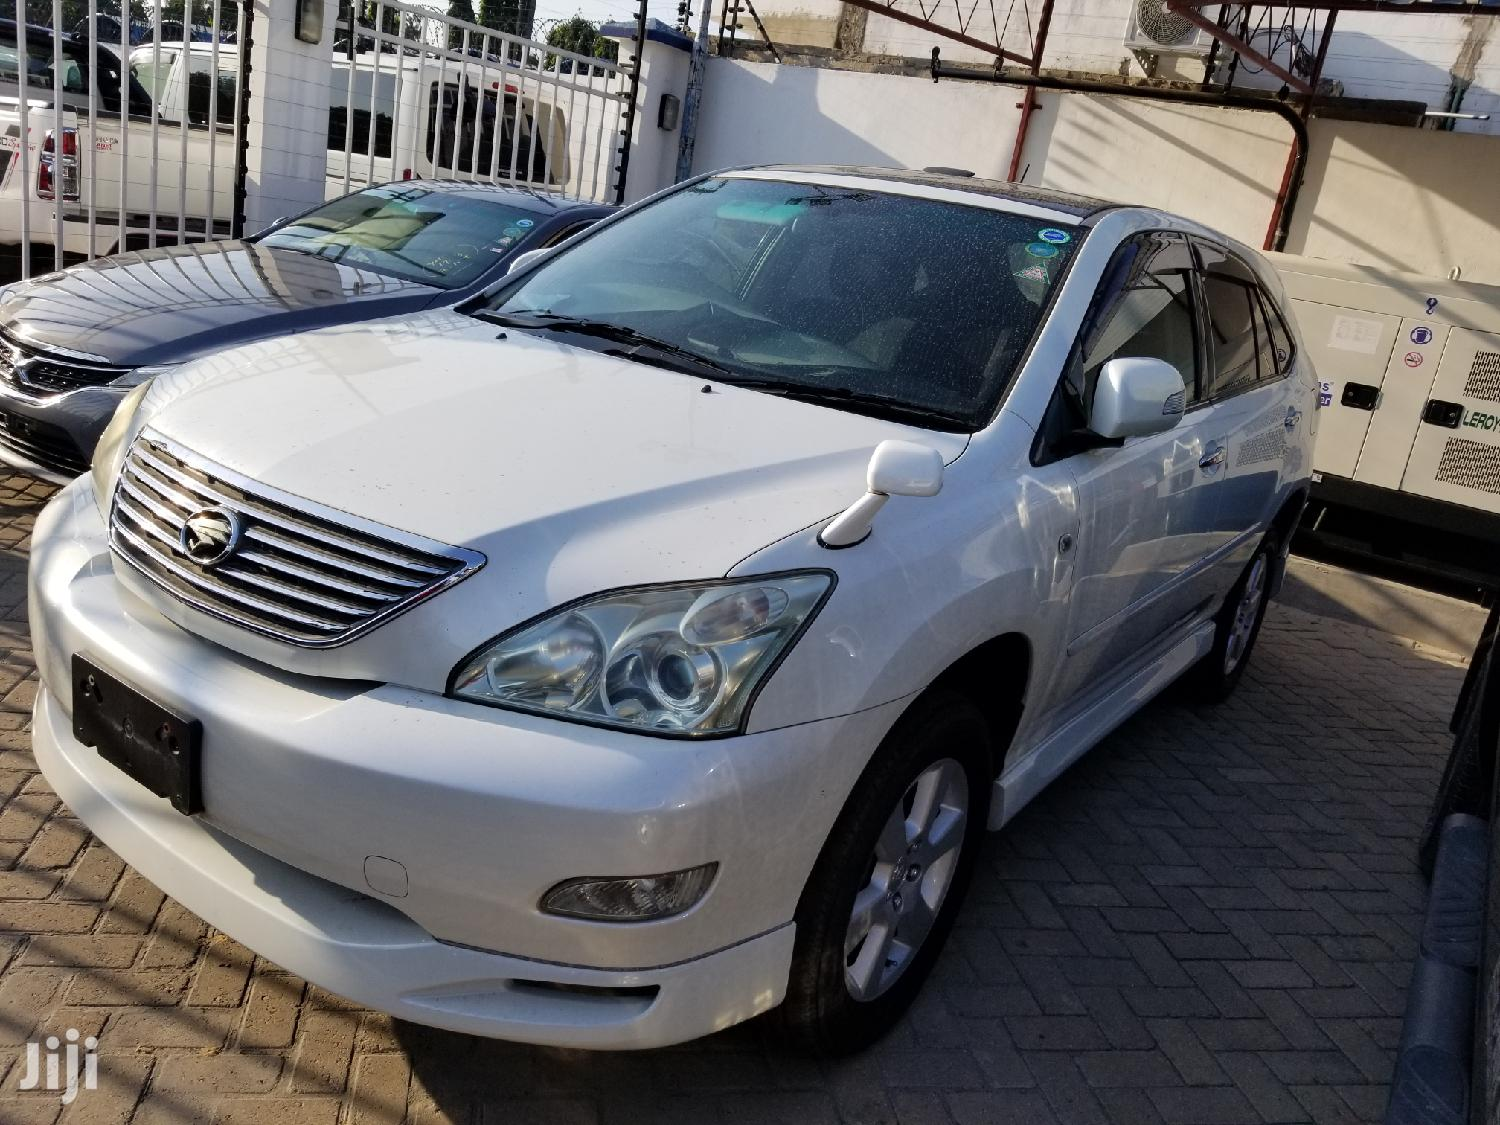 Toyota Harrier 2012 White | Cars for sale in Tononoka, Mombasa, Kenya